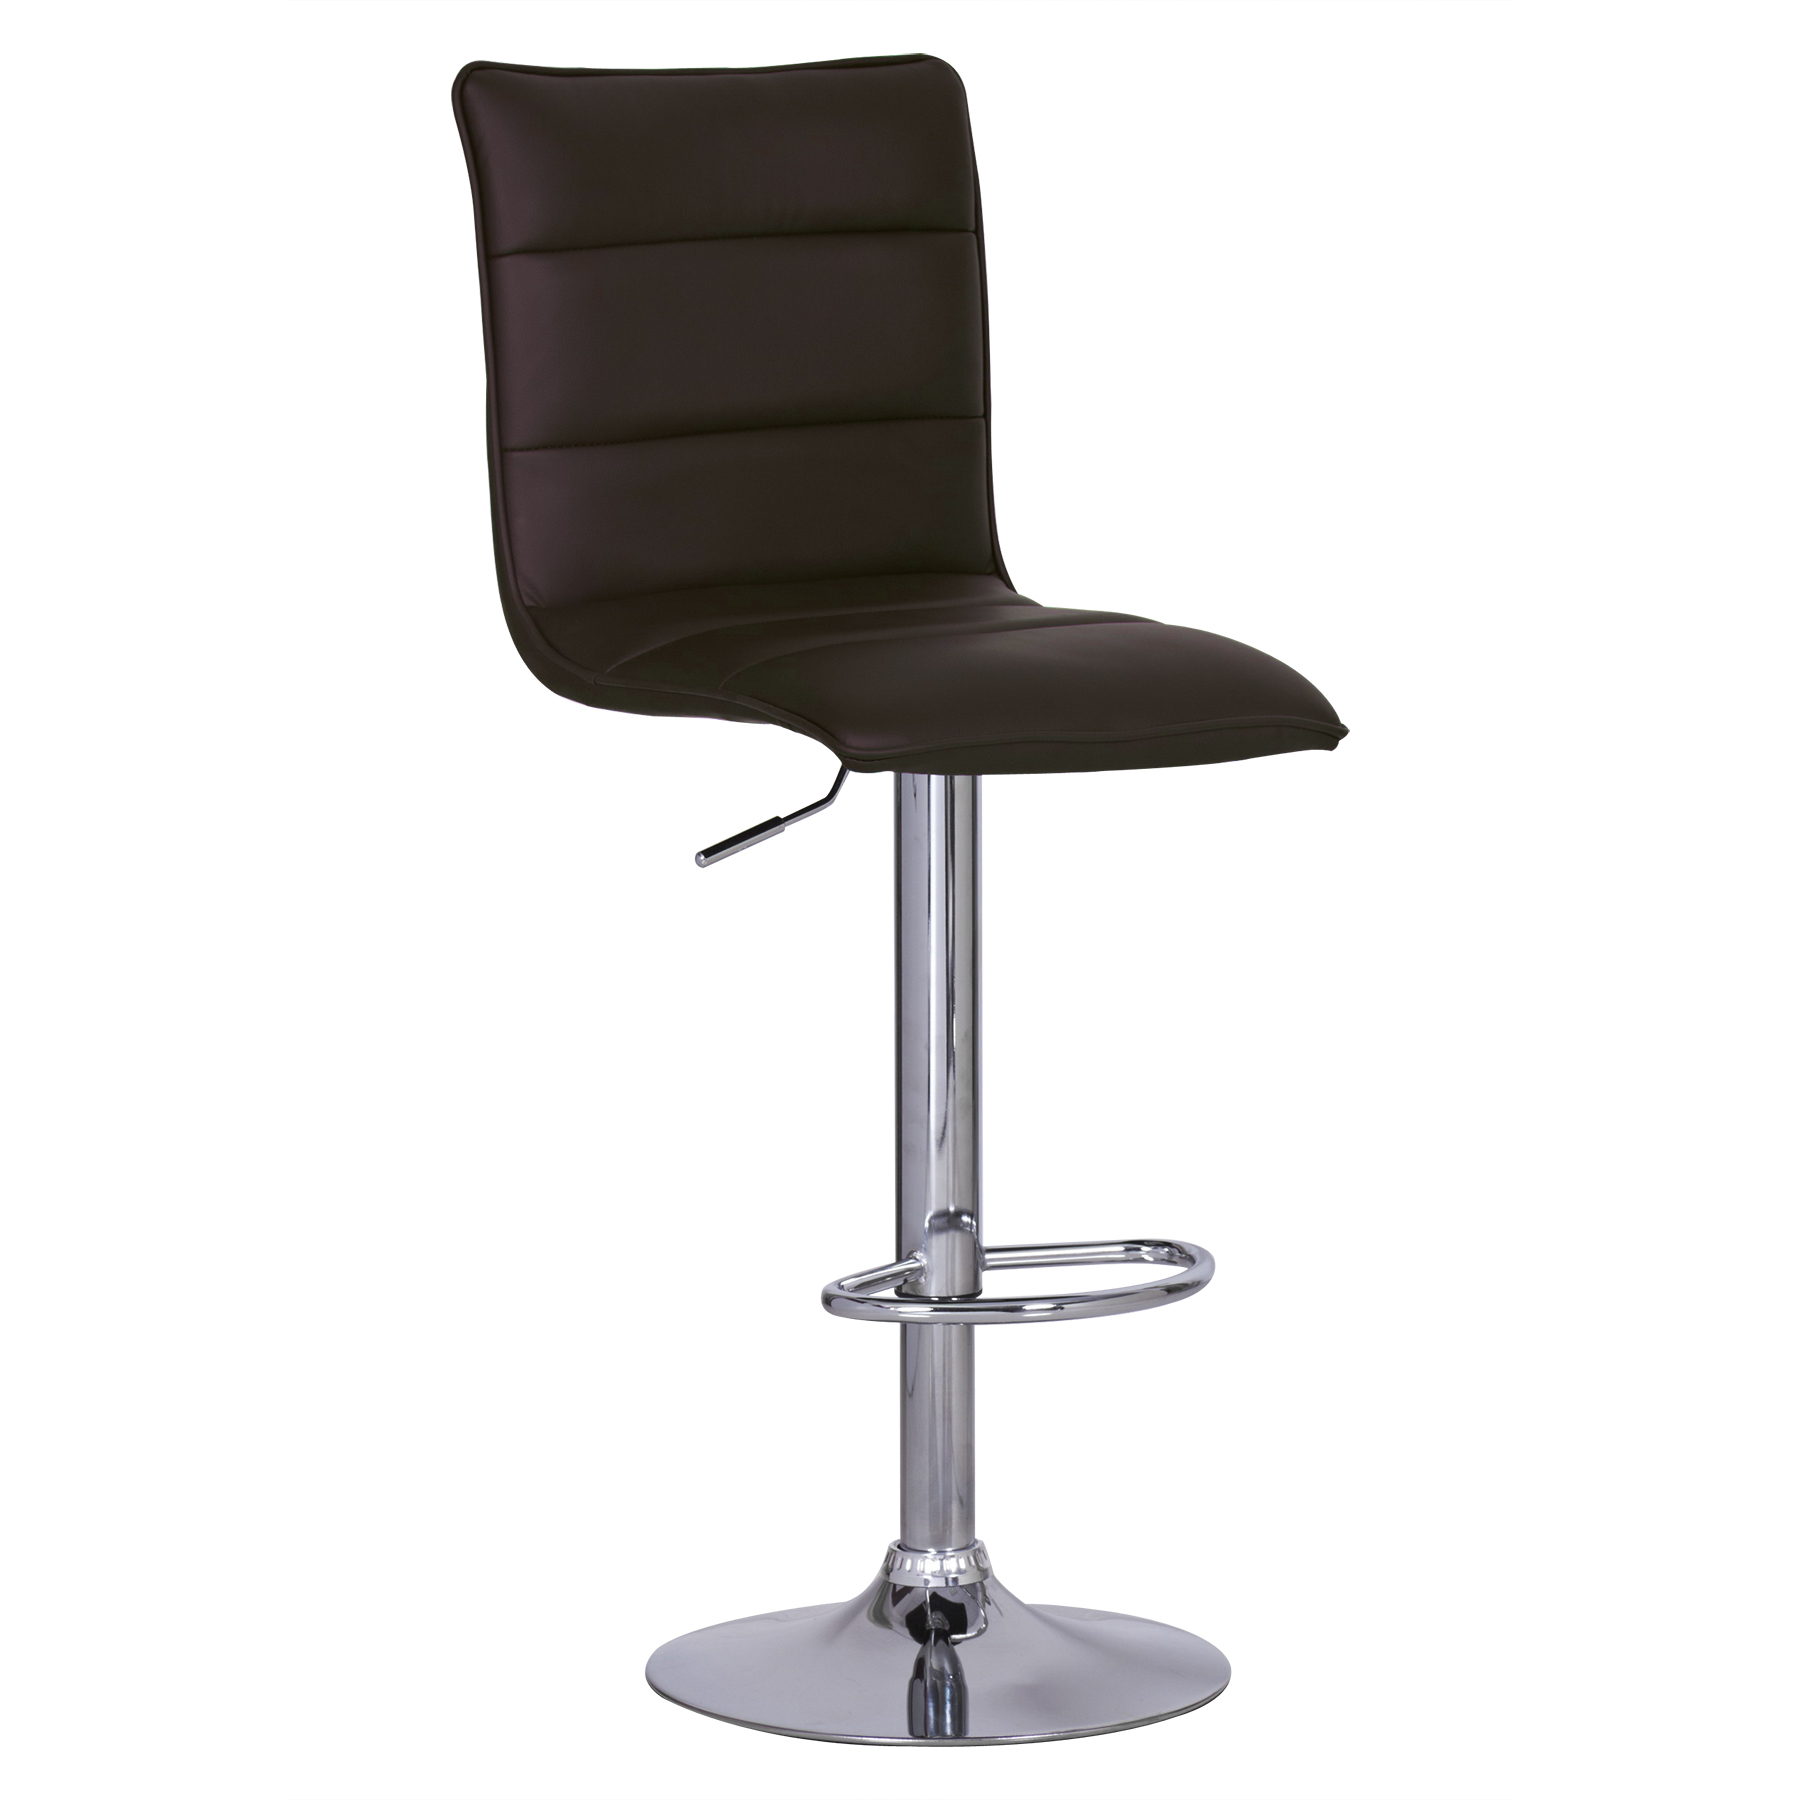 Faux Leather Bar Stools Swivel Bar Stool Kitchen Breakfast  : BH15br 10 from www.ebay.co.uk size 1800 x 1800 jpeg 453kB